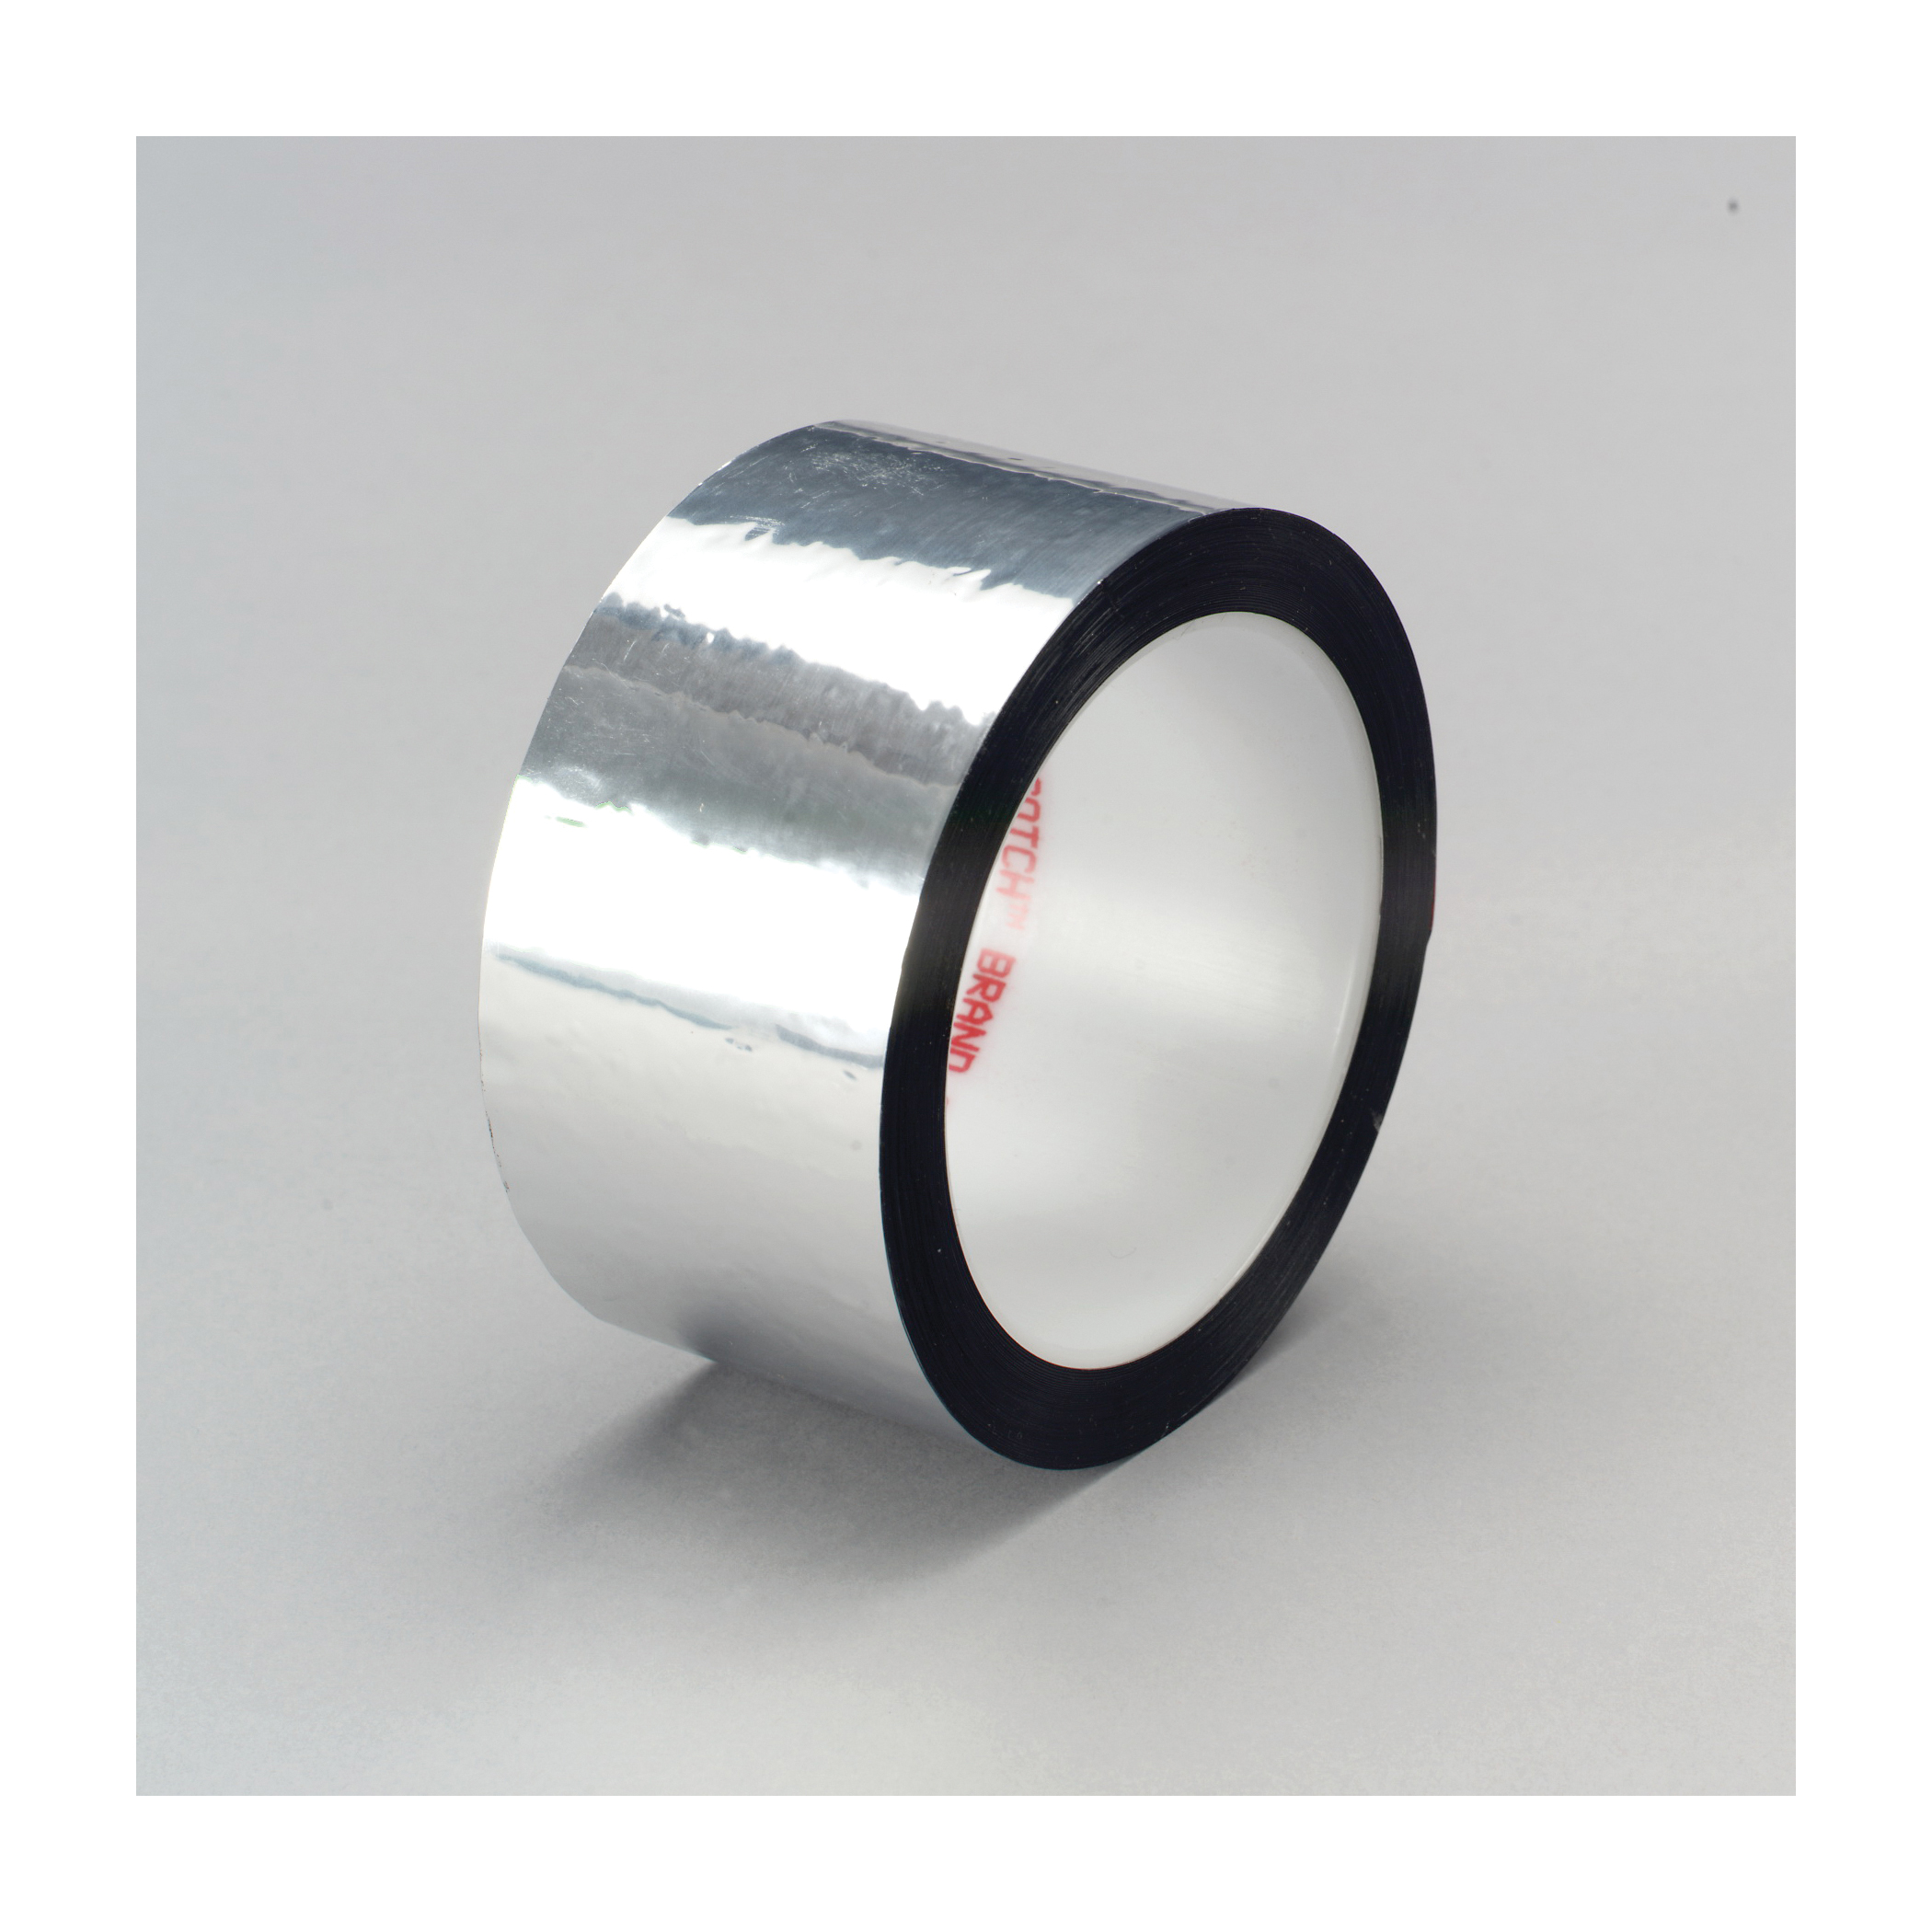 3M™ 021200-04147 Film Tape, 72 yd L x 3/8 in W, 1.9 mil THK, Acrylic Adhesive, Polyester Backing, Silver